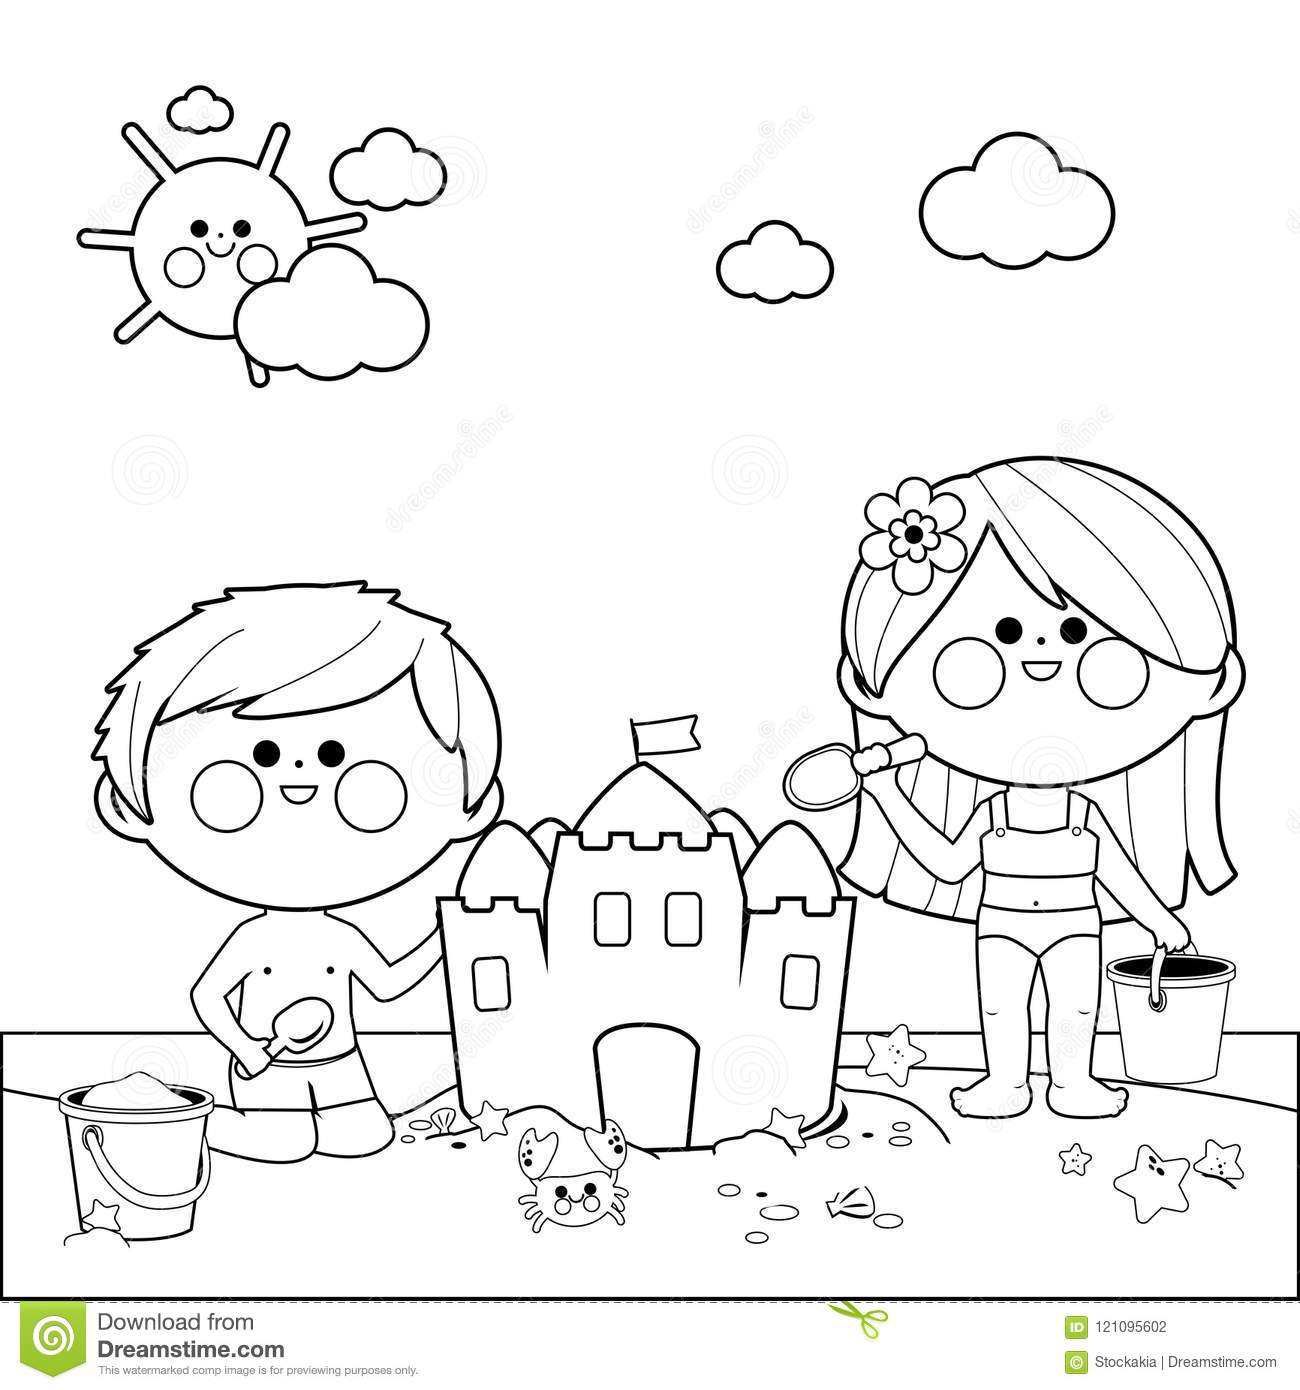 summer coloring pages - Free Large Images | 1390x1300